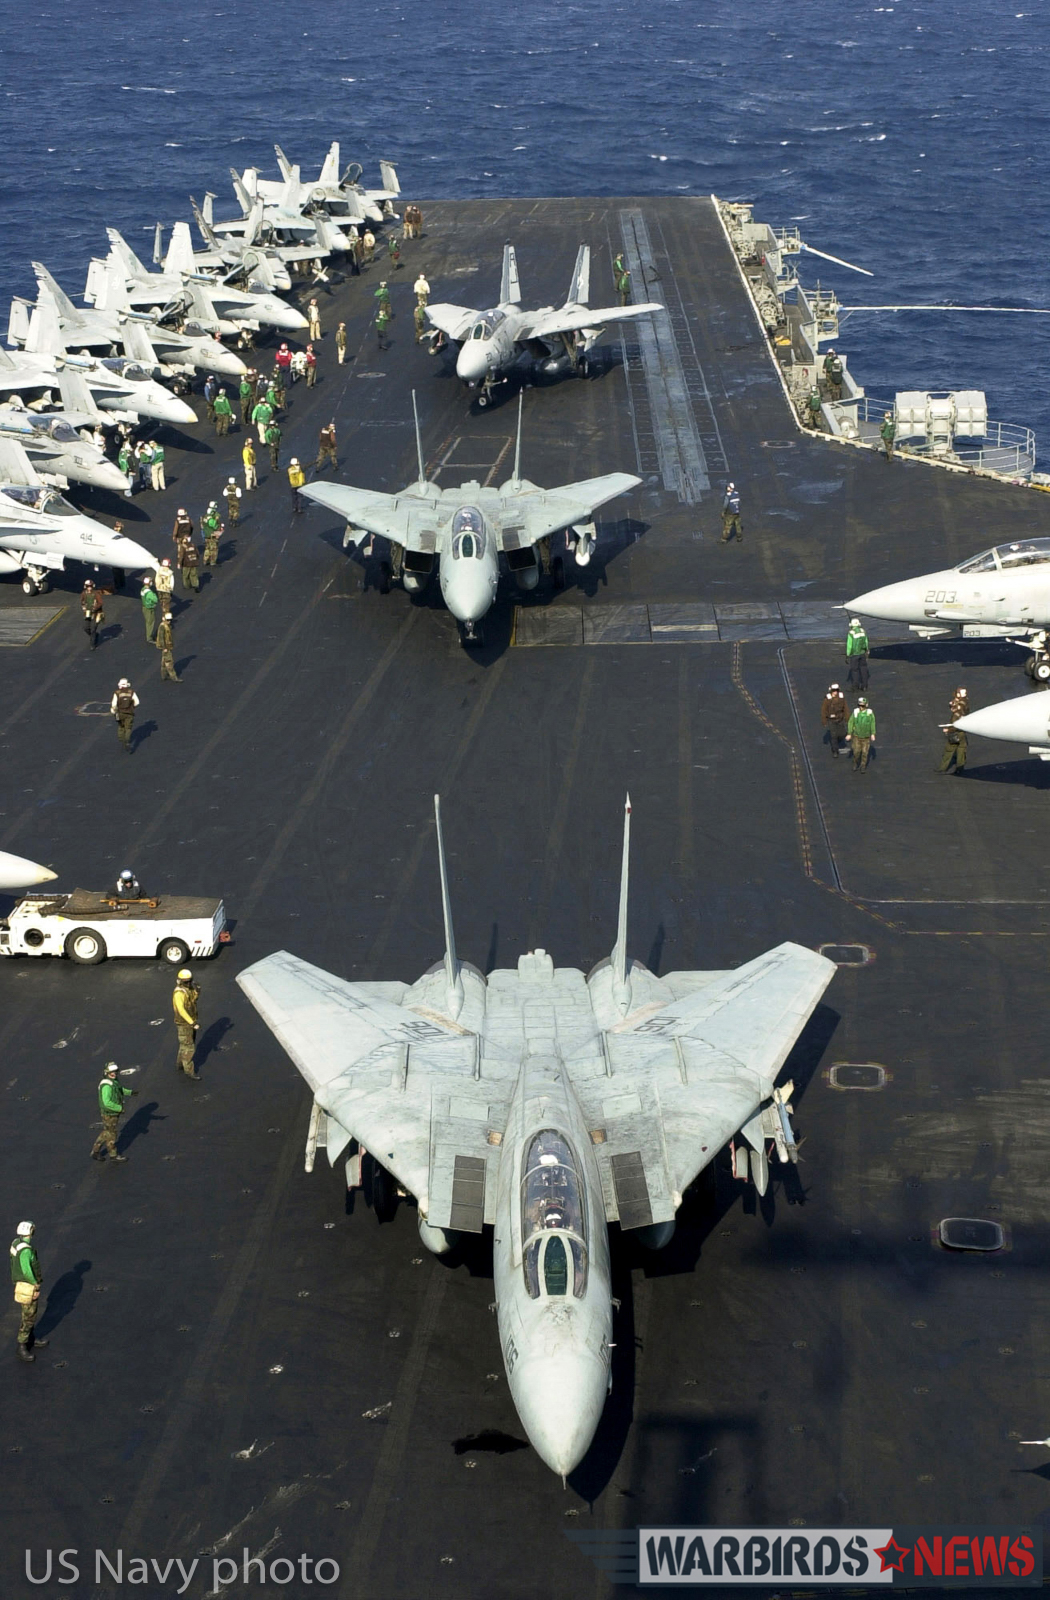 Aboard USS Enterprise (CVN 65) Nov 9, 2001-- F-14 Tomcats prepare to take off from the flight deck of USS Enterprise a final time. This was the last time the 34 year-old aircraft will be deploying on the carrier. USS Enterprise (CVN 65) is returning to her homeport in Norfolk, Virginia after completing a six-month deployment. U.S. Navy Photo by Photographer's Mate 1st Class, Martin Maddock. (RLEASED)